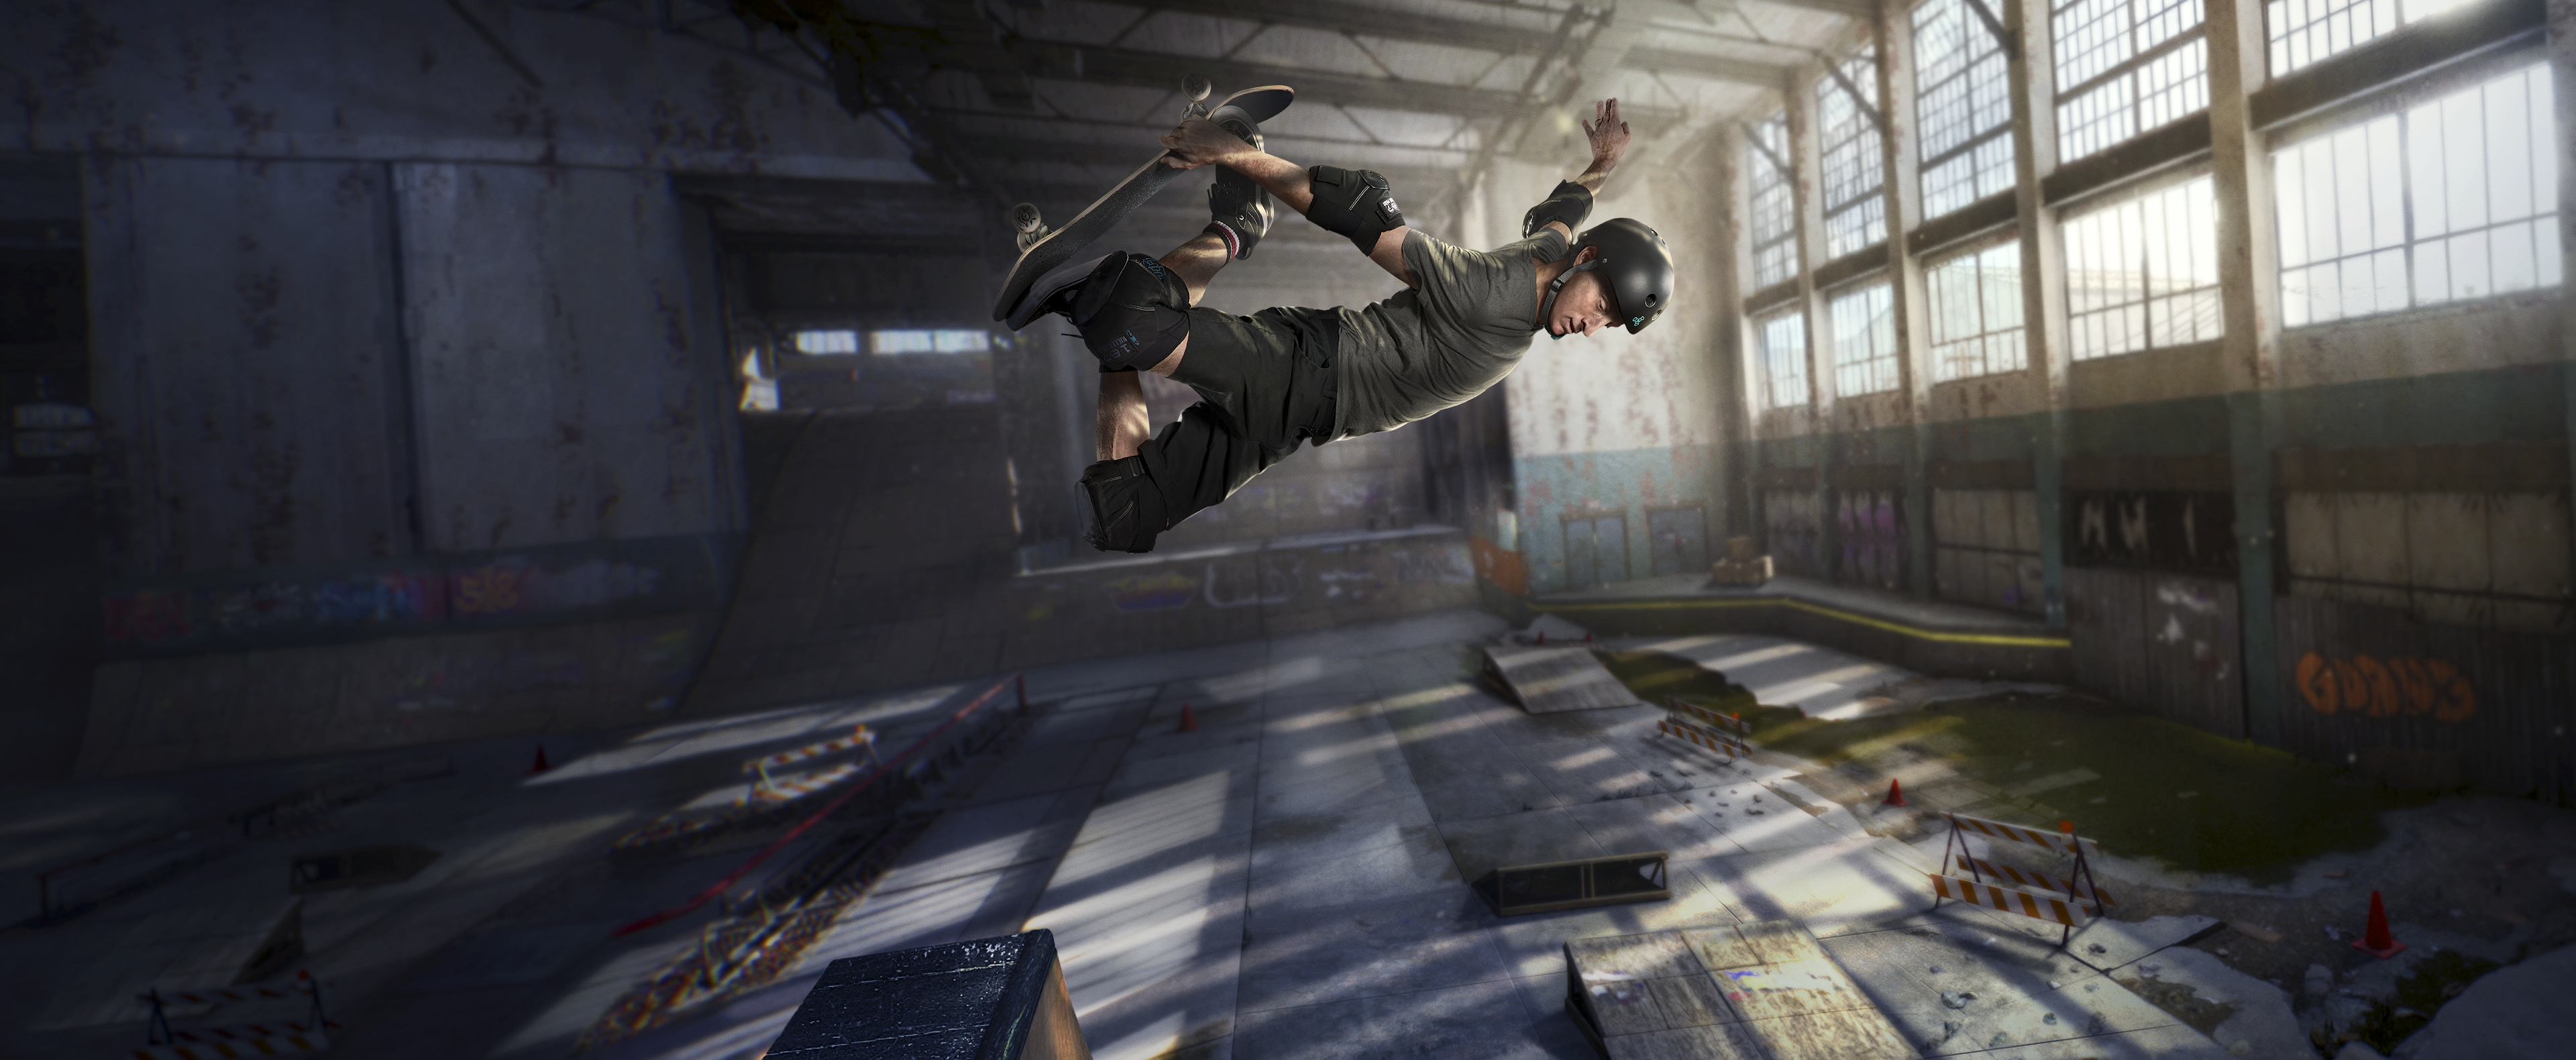 Tony Hawk's Pro Skater 1 + 2 - Key Art